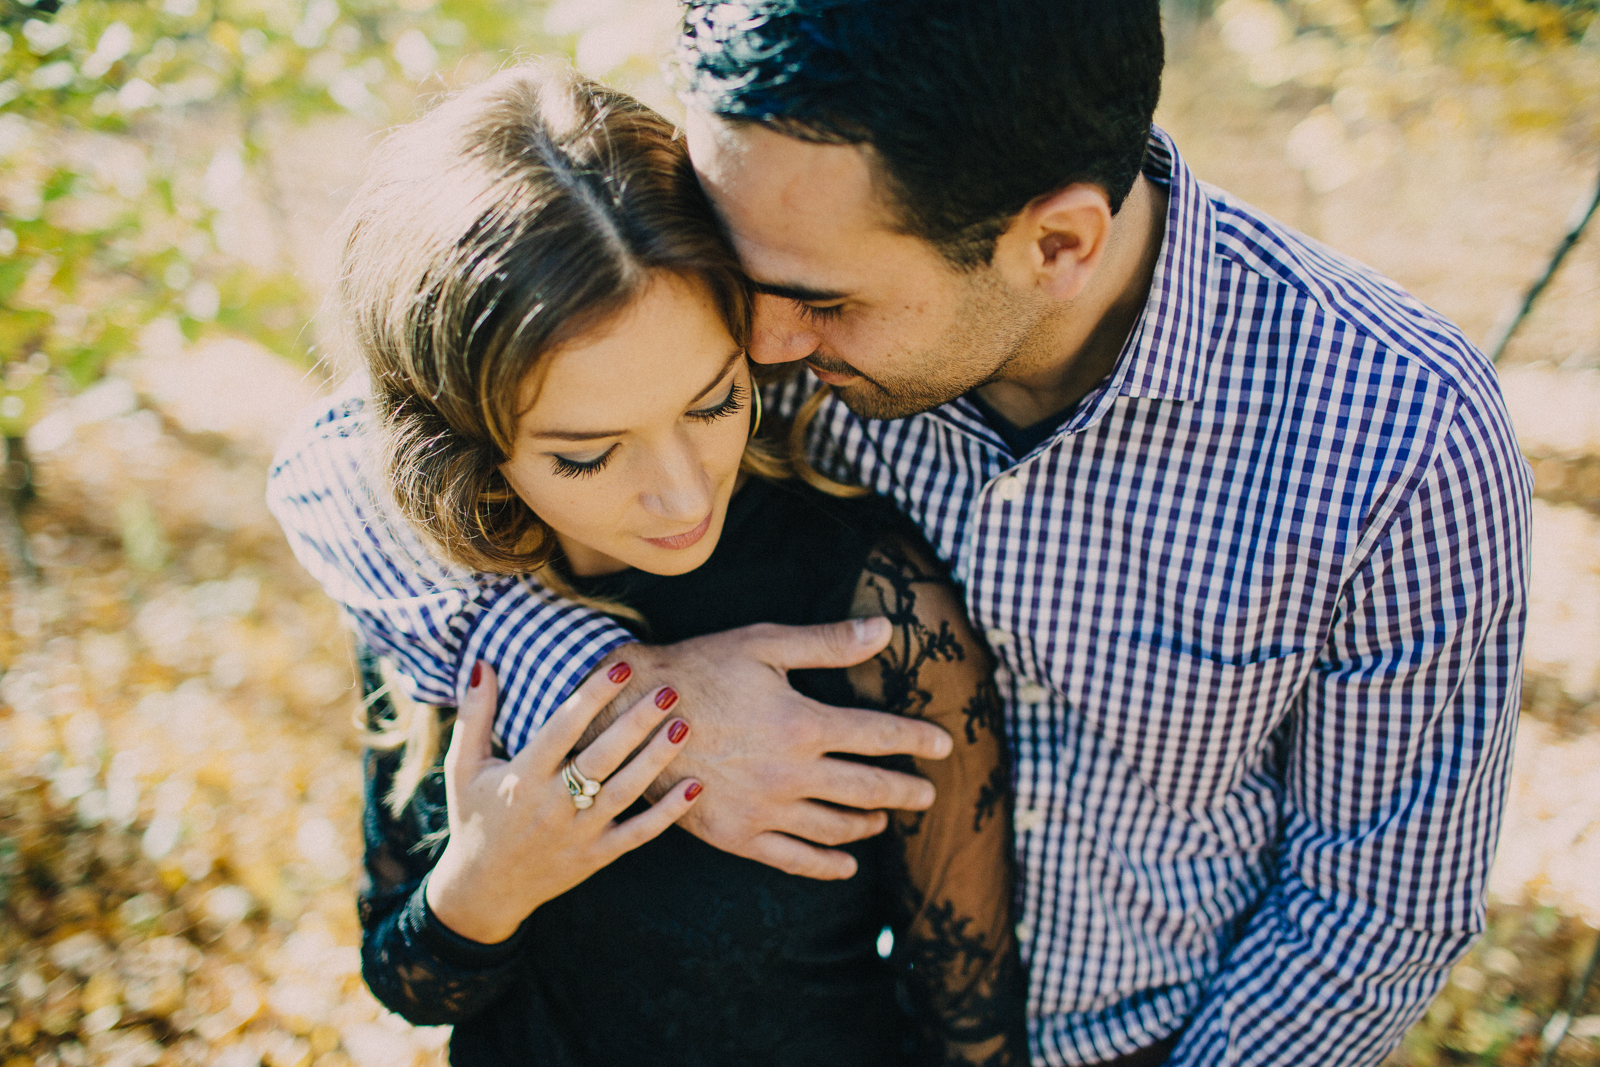 matea state park indiana fort wayne engagement session sarah cusson photography-1.jpg